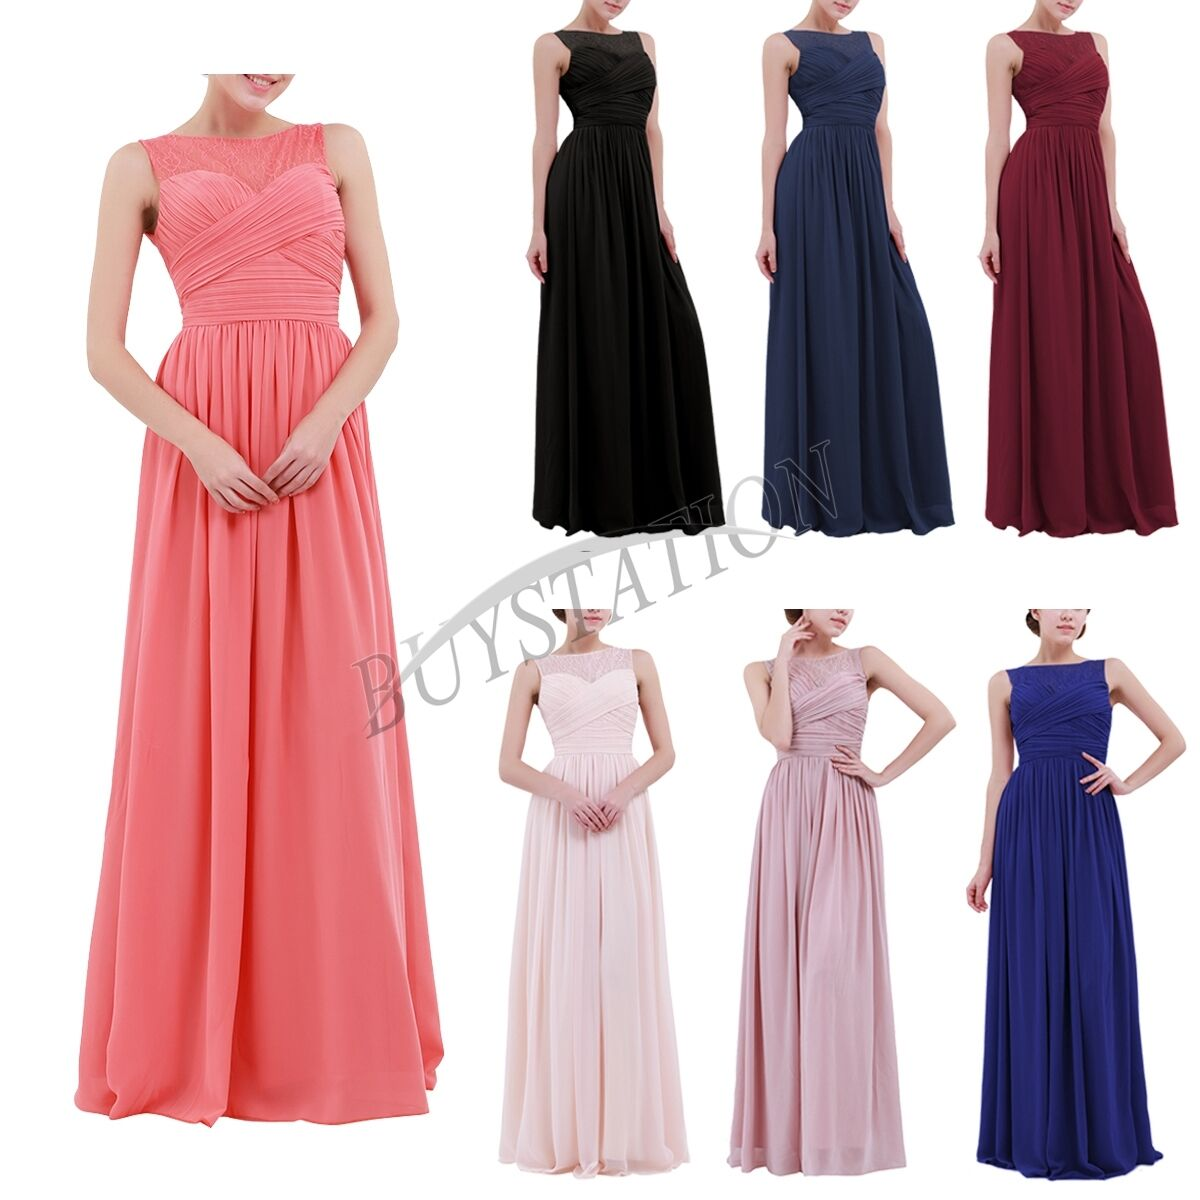 Womens Formal Lace Long Dress Prom Evening Party Cocktail Bridesmaid Wedding